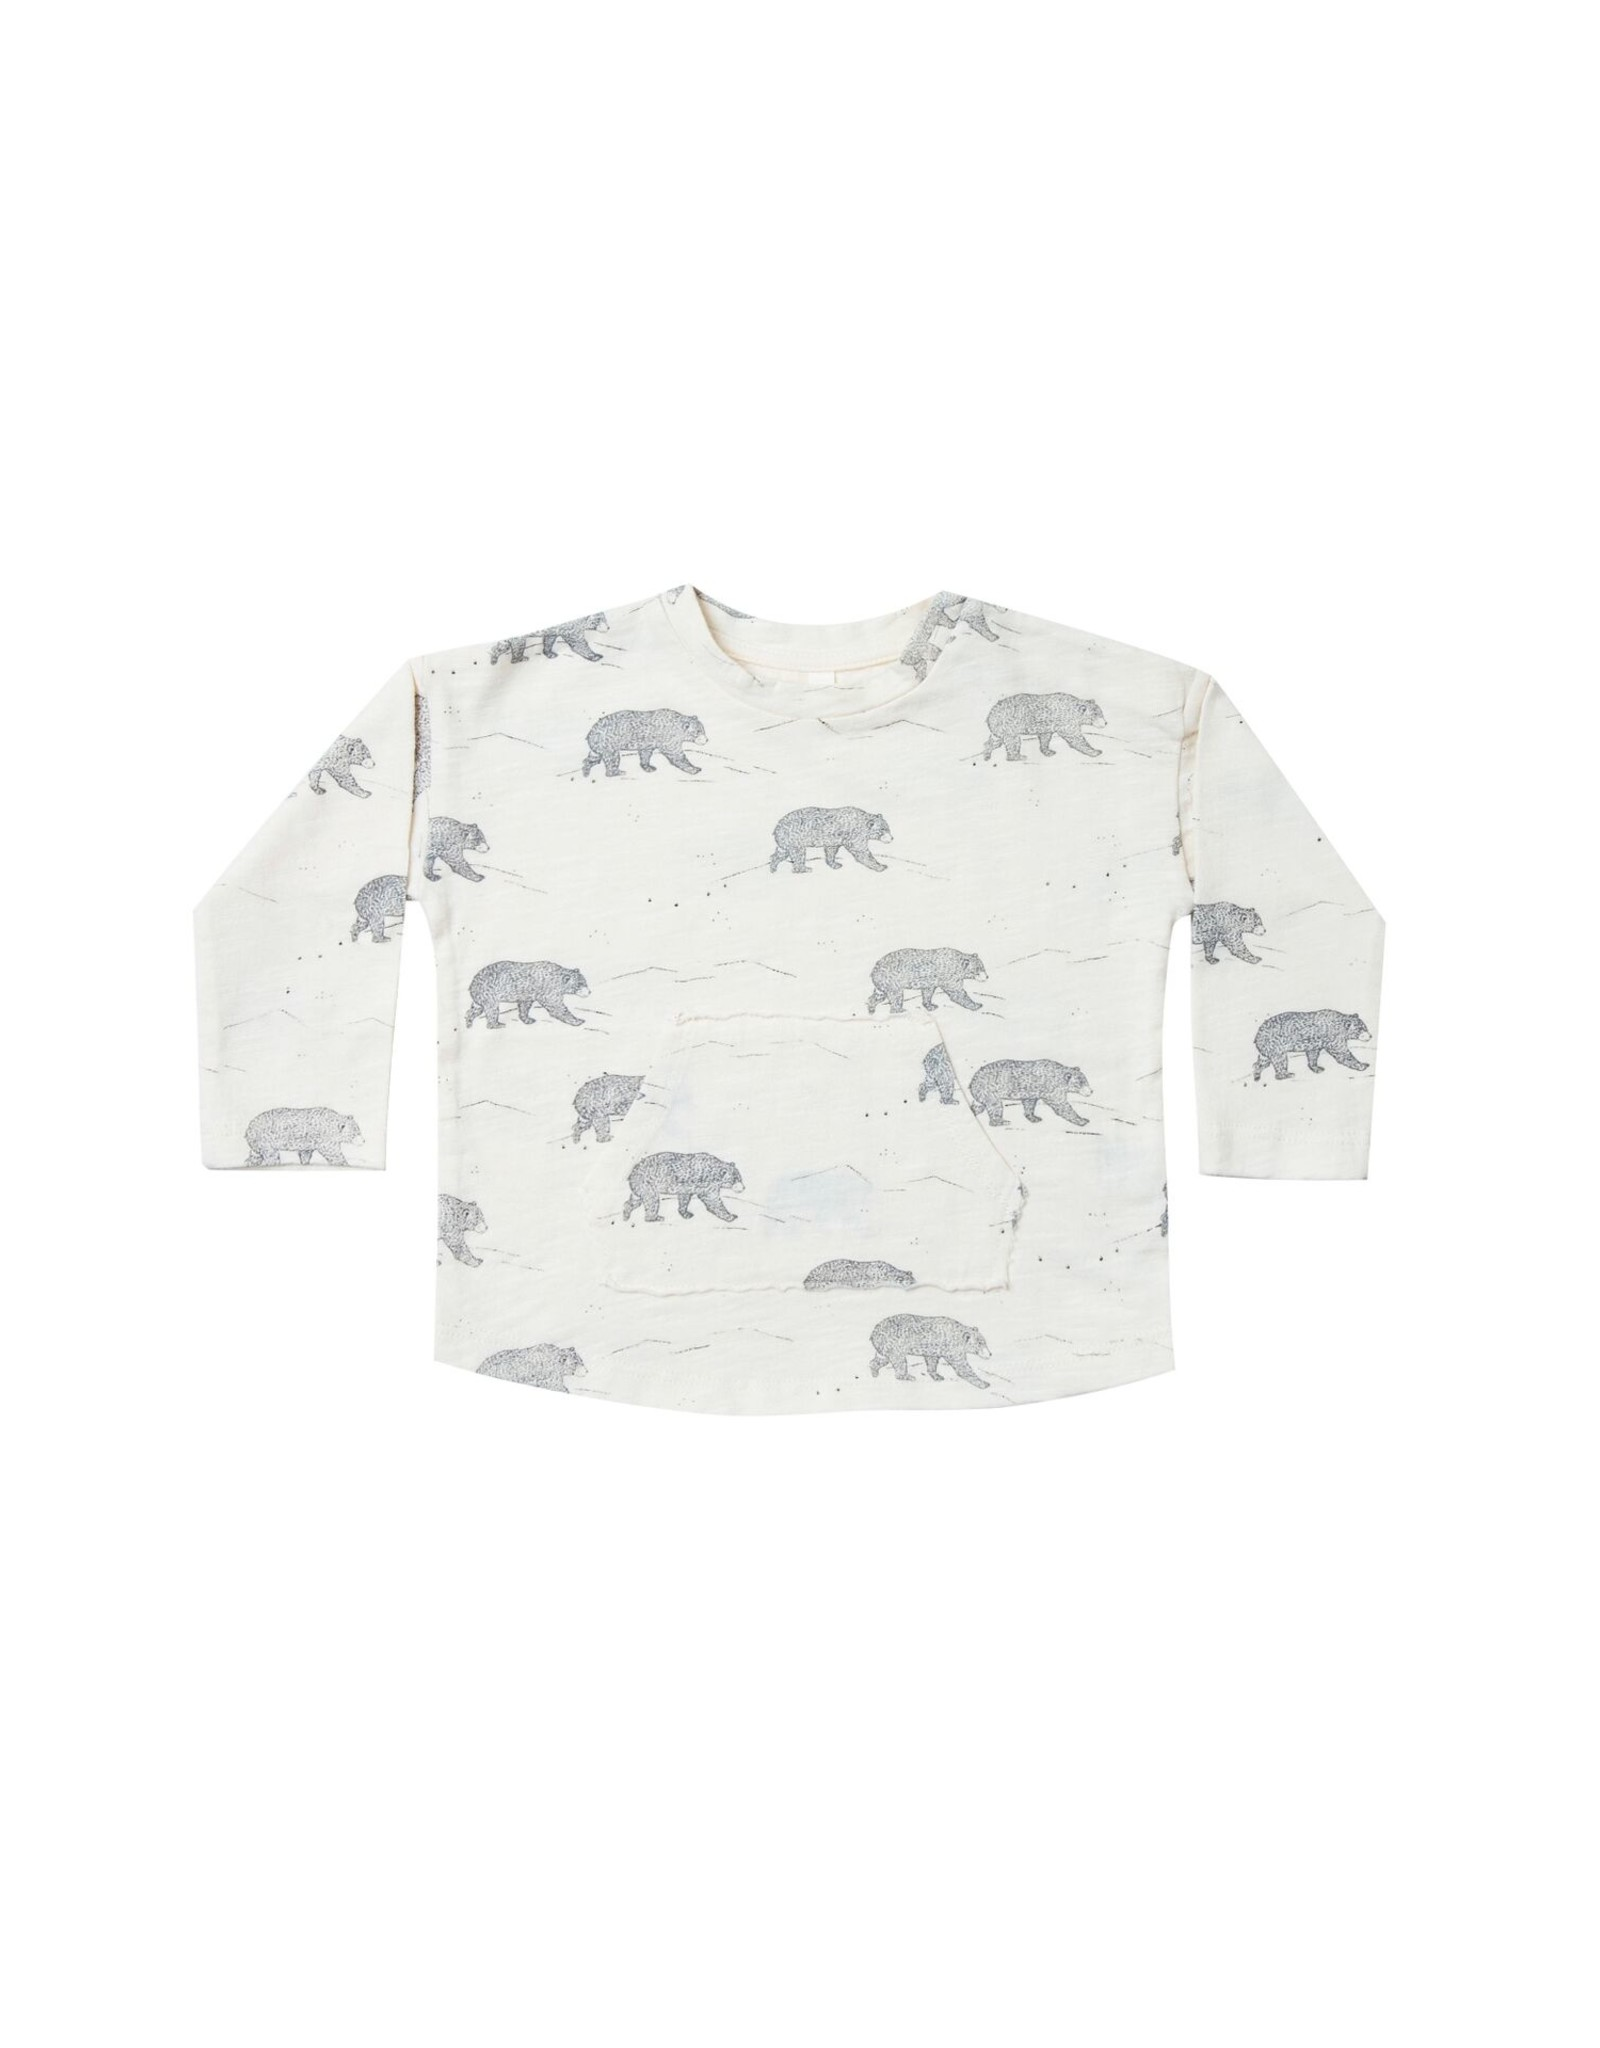 Rylee and Cru bears longsleeve tee